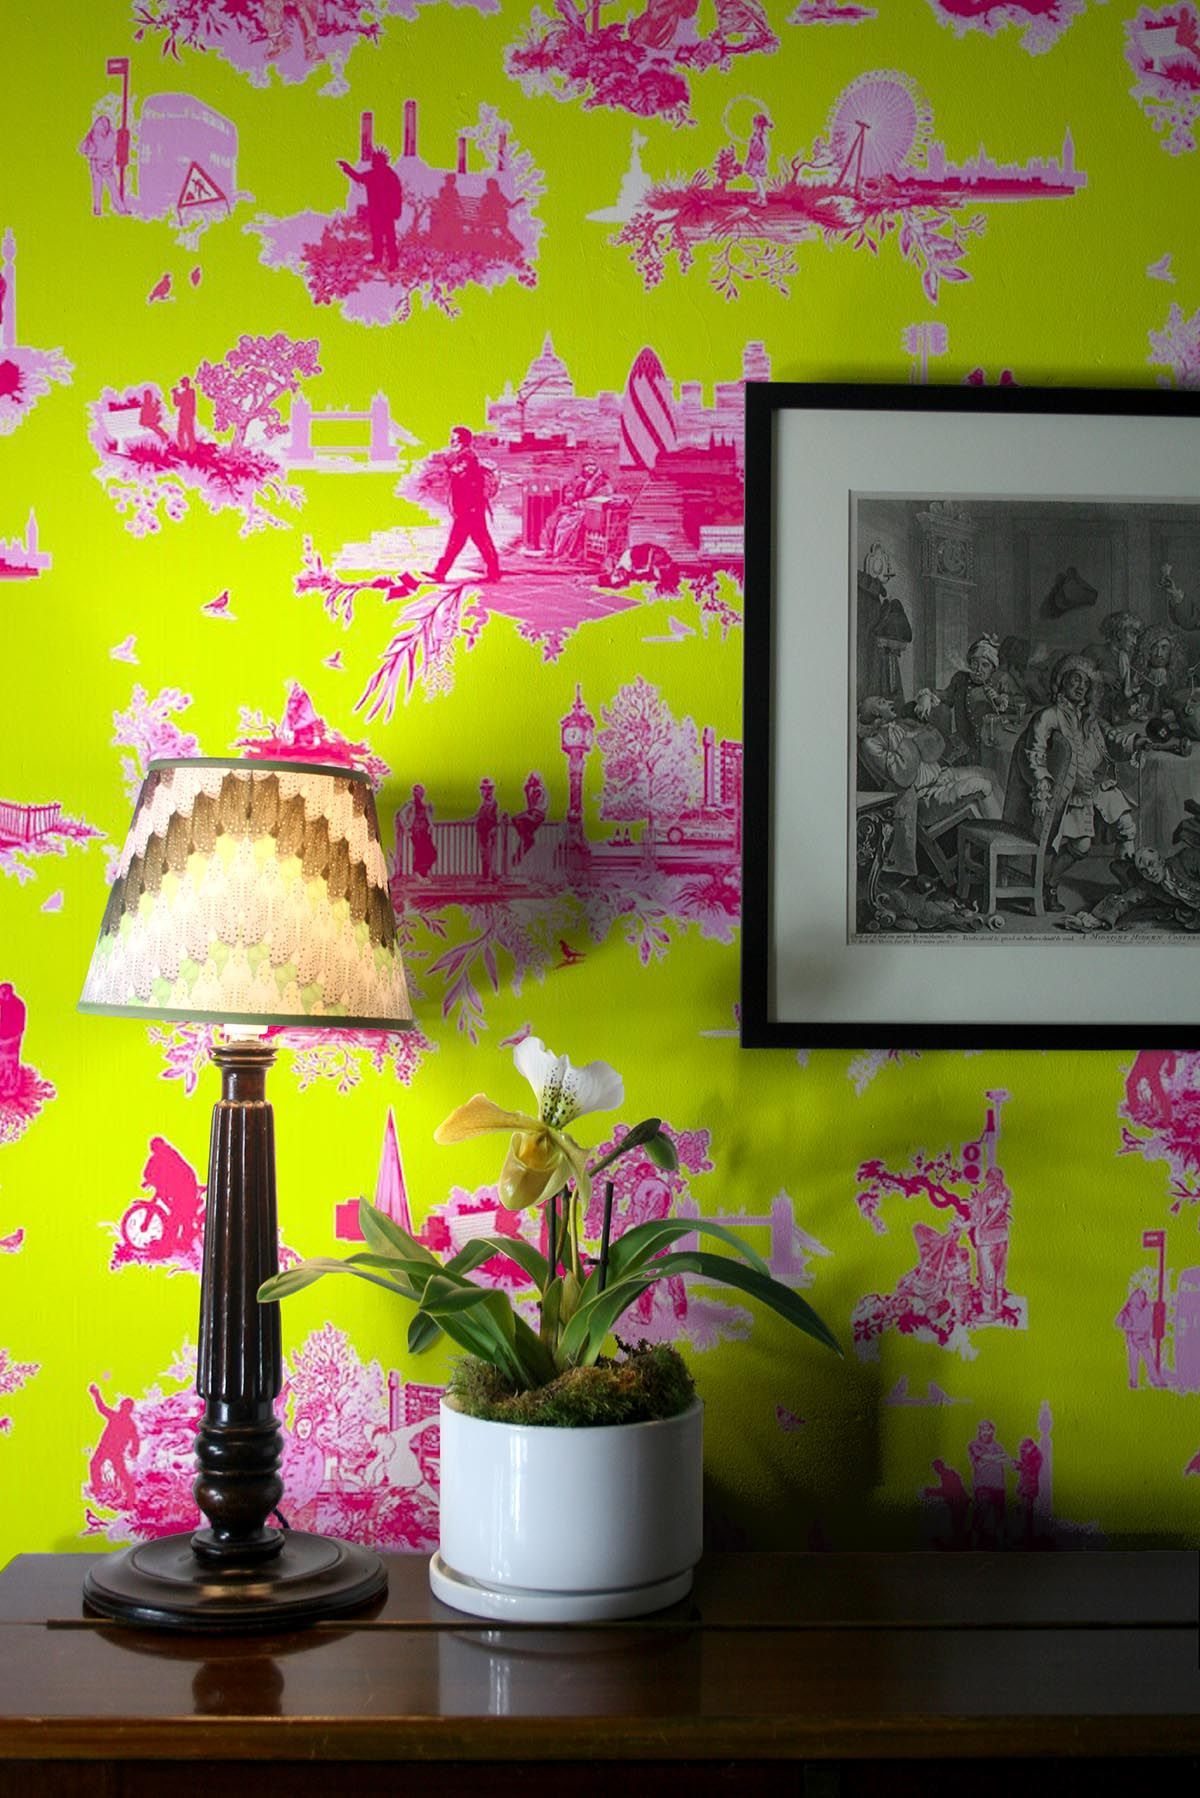 Pink hallway wallpaper  London Toile Brights wallpaper in Pinks on Green by Timorous